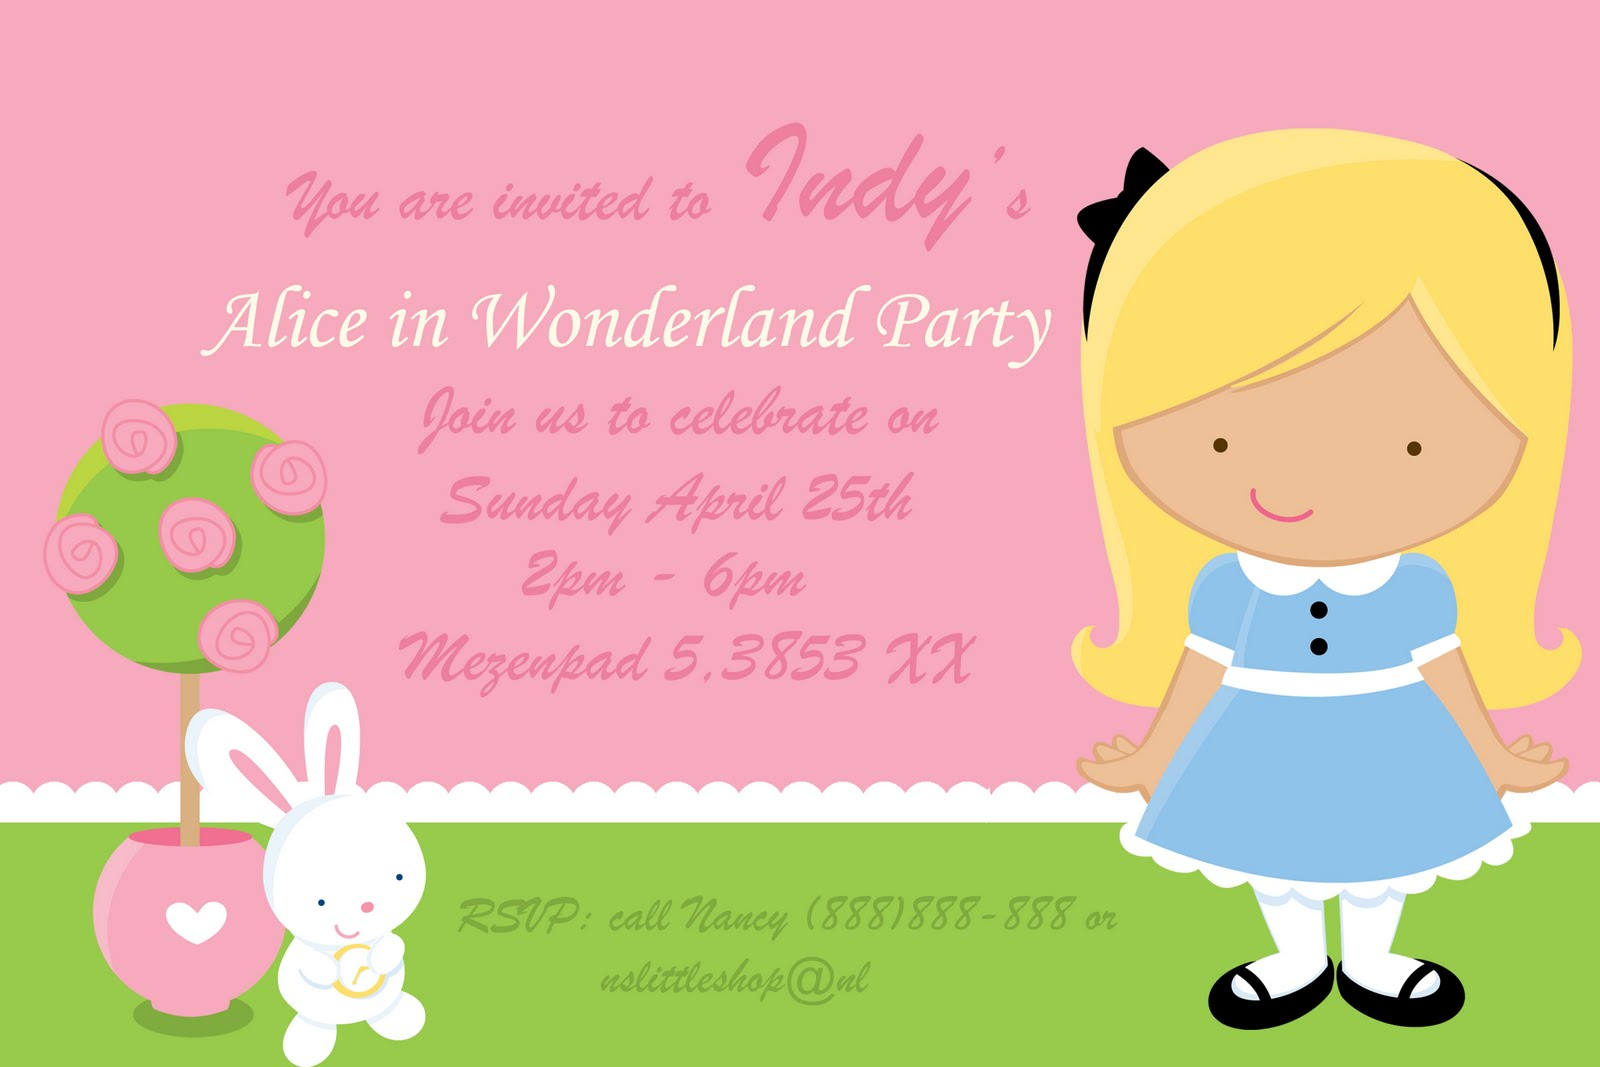 nslittleshop party decorations and more: Alice in Wonderland